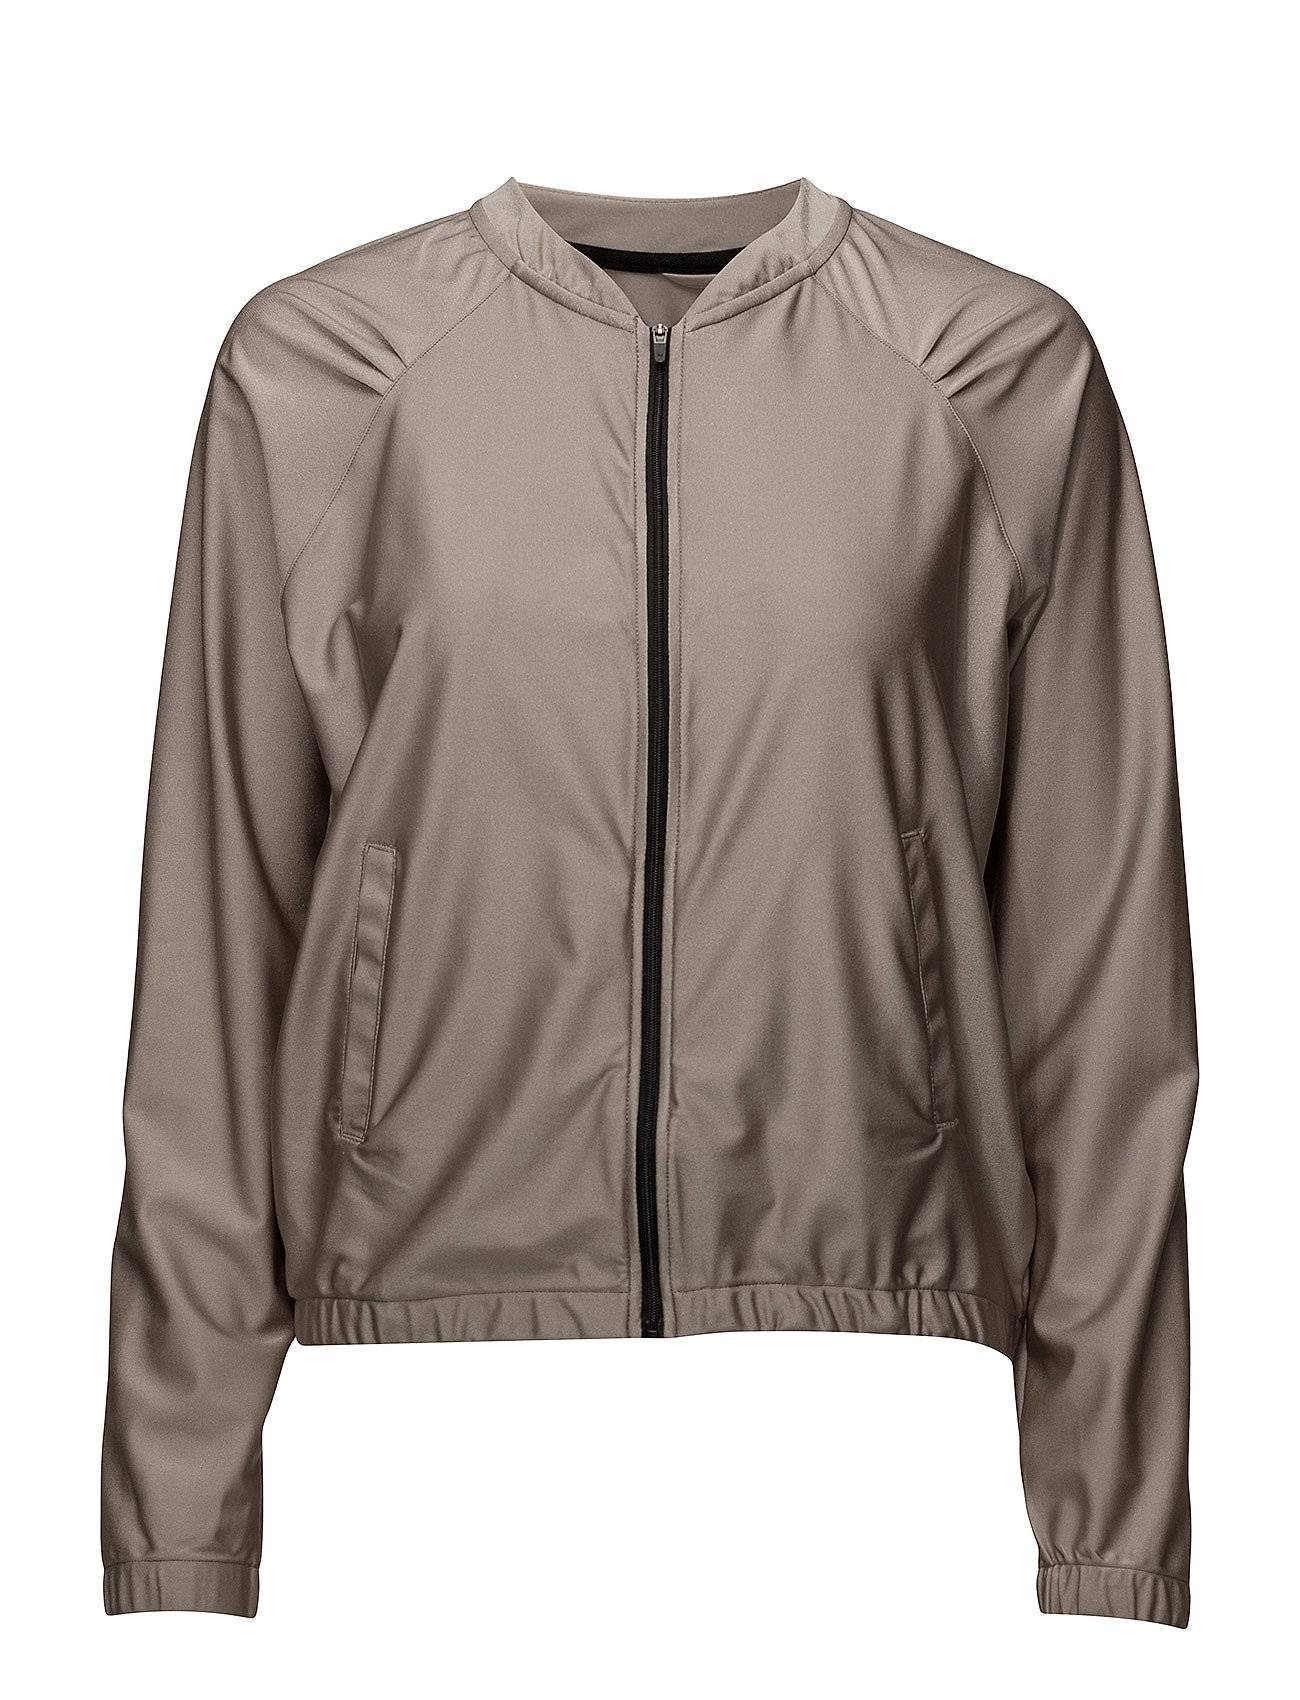 Casall Metal Shine Jacket